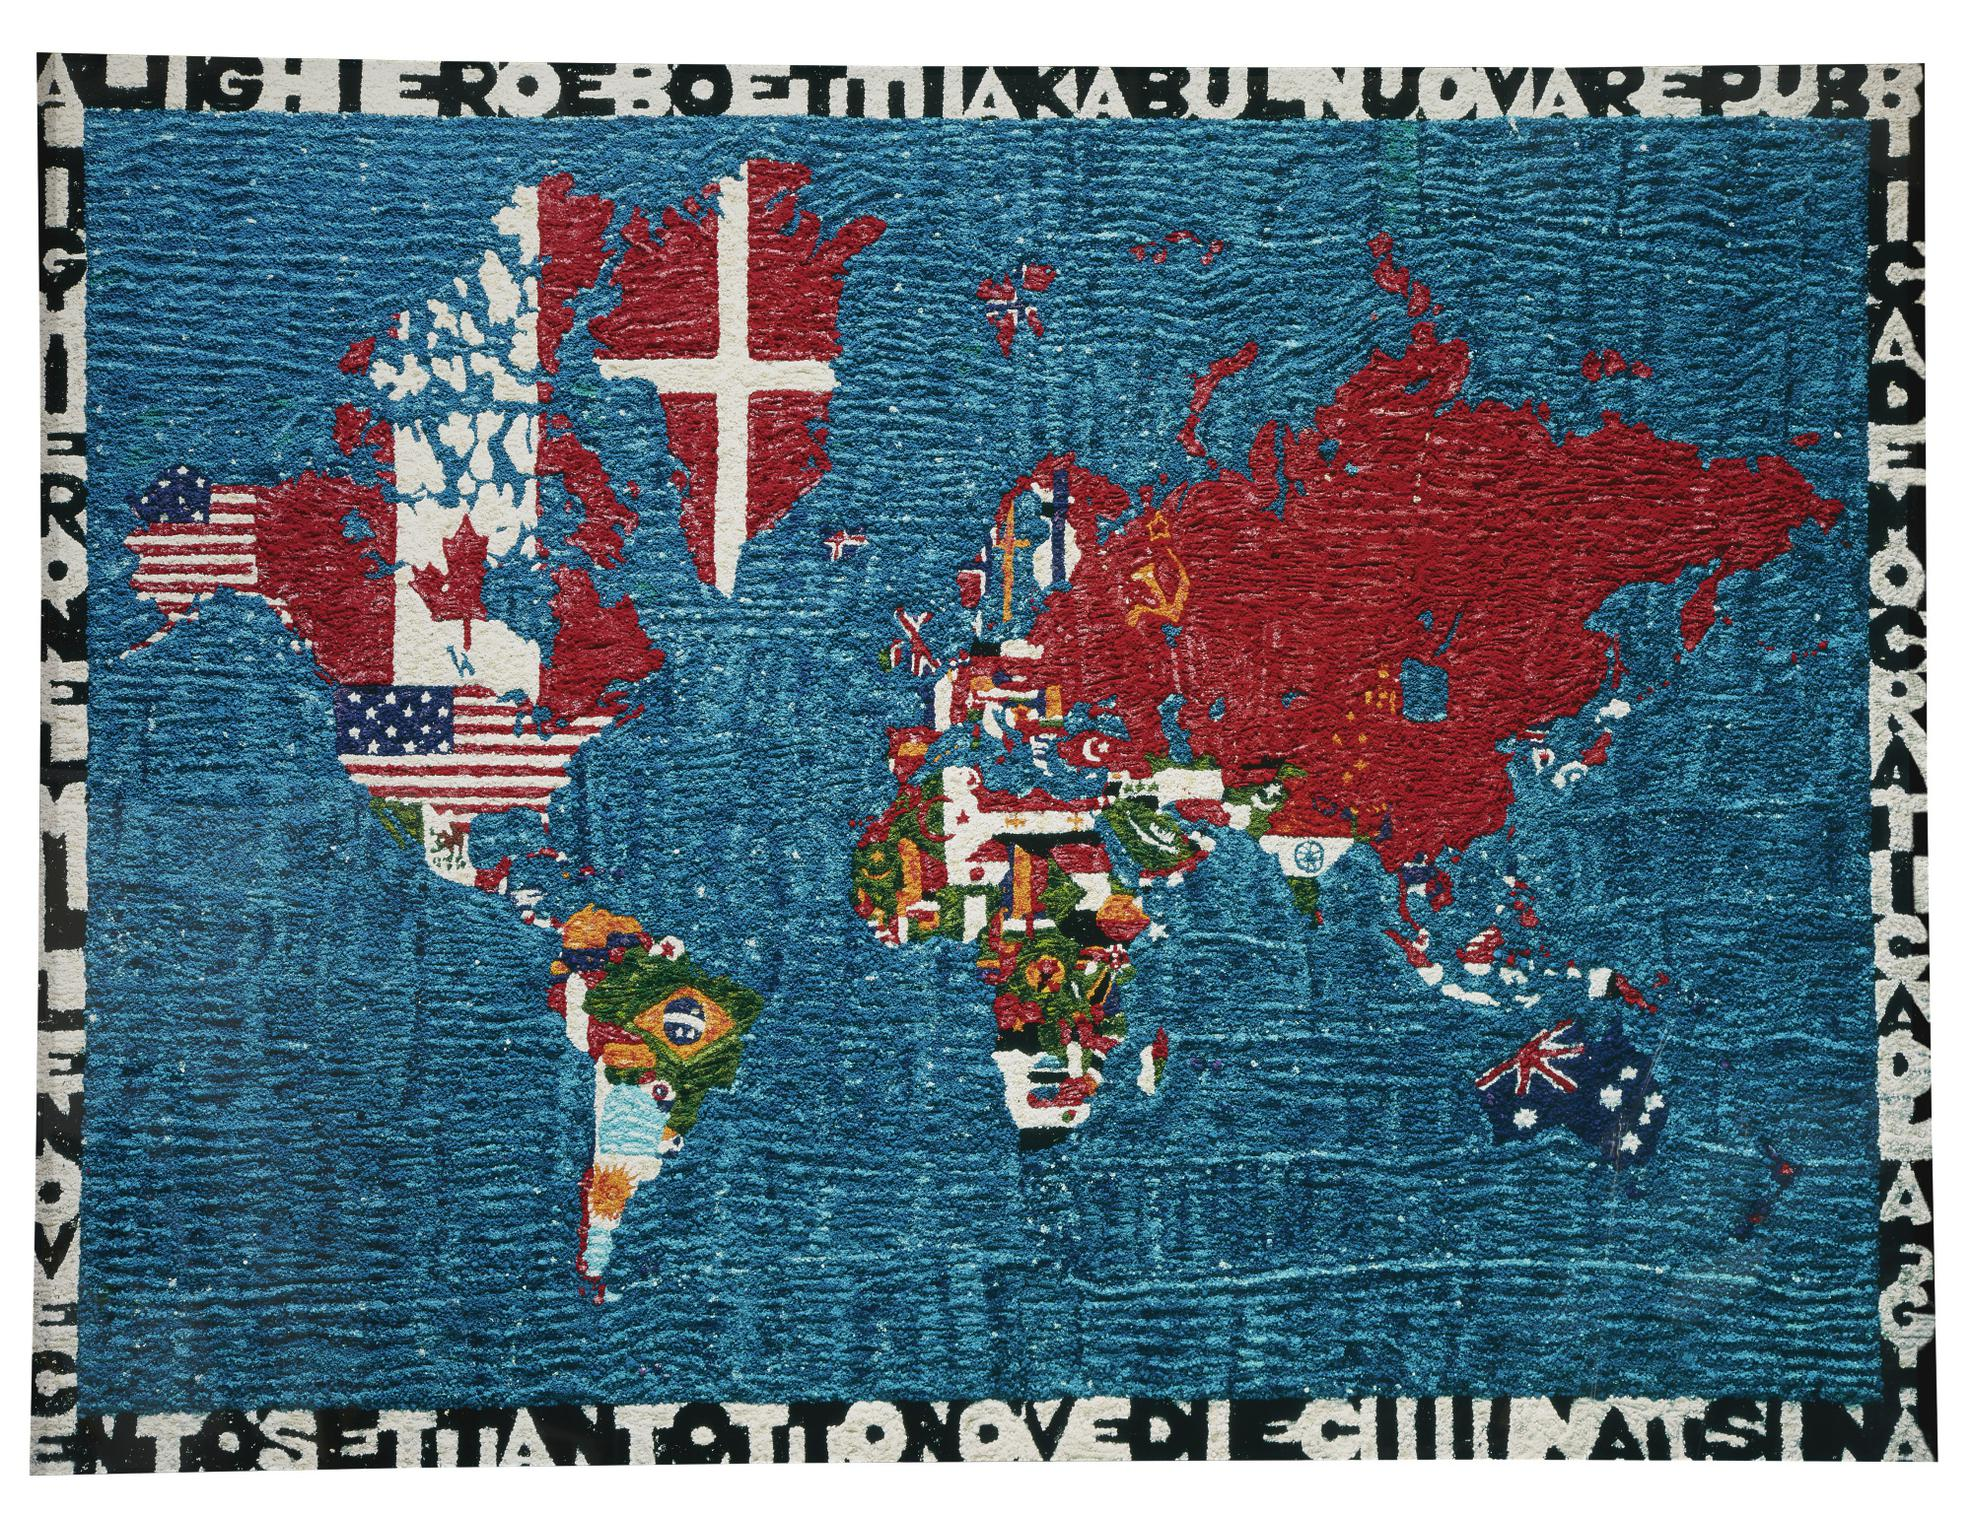 Vik Muniz-Pictures Of Pigment: Mappa Del Mondo, After Alighiero Boetti-2009